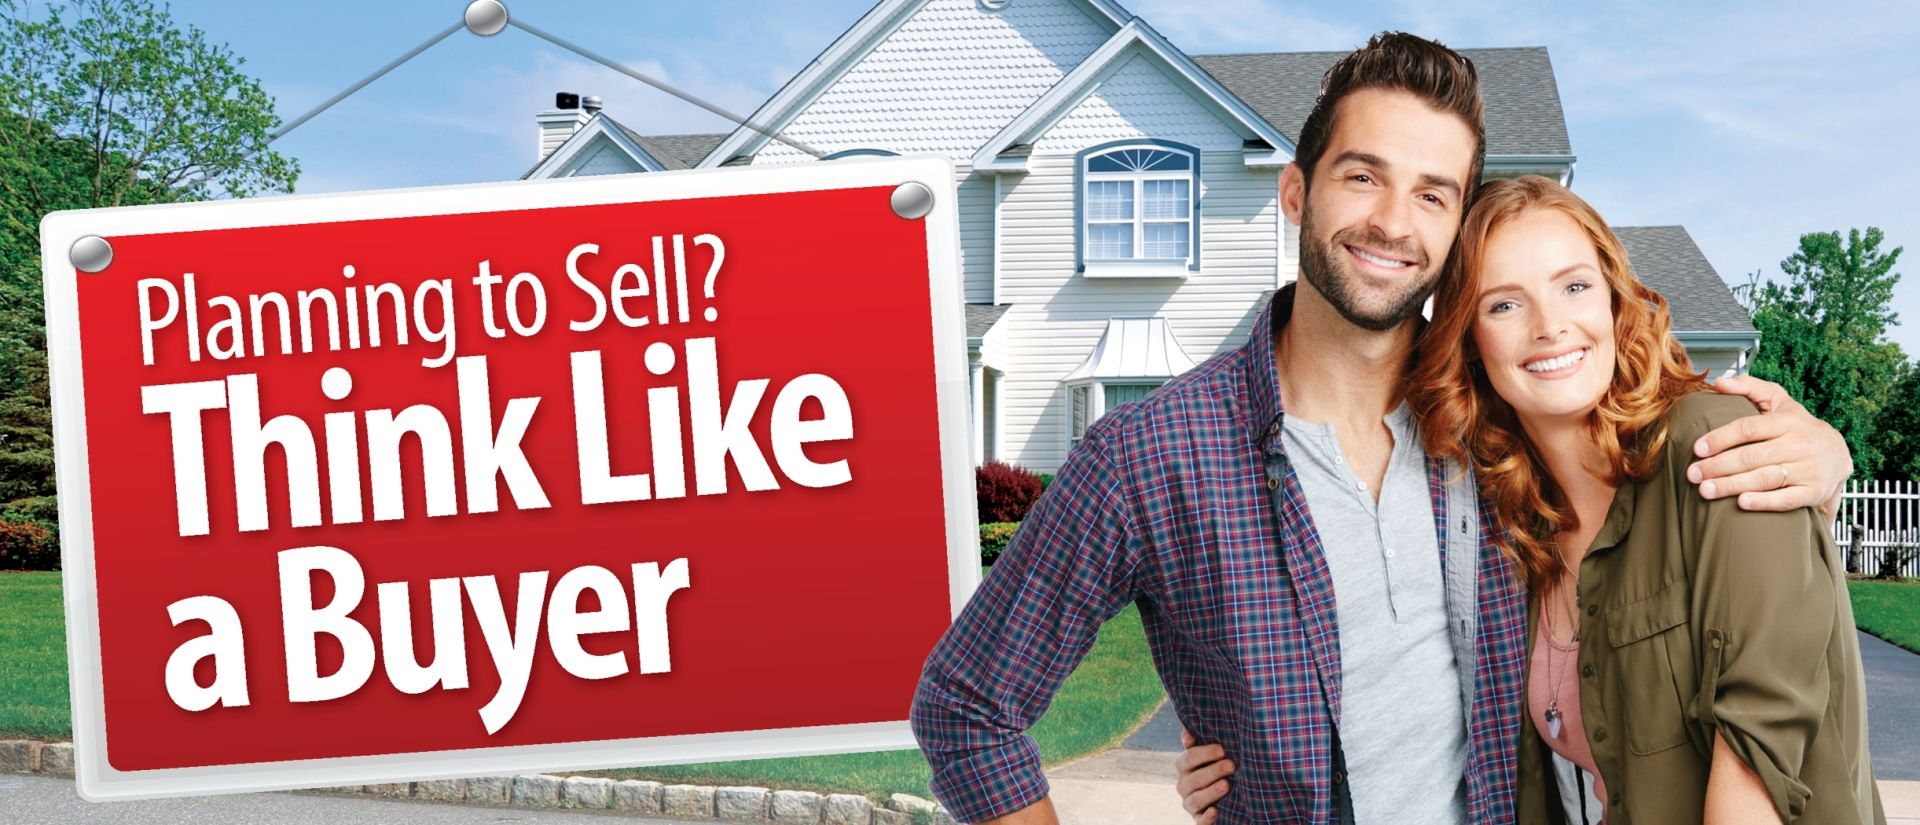 SELLERS: Think Like A Buyer